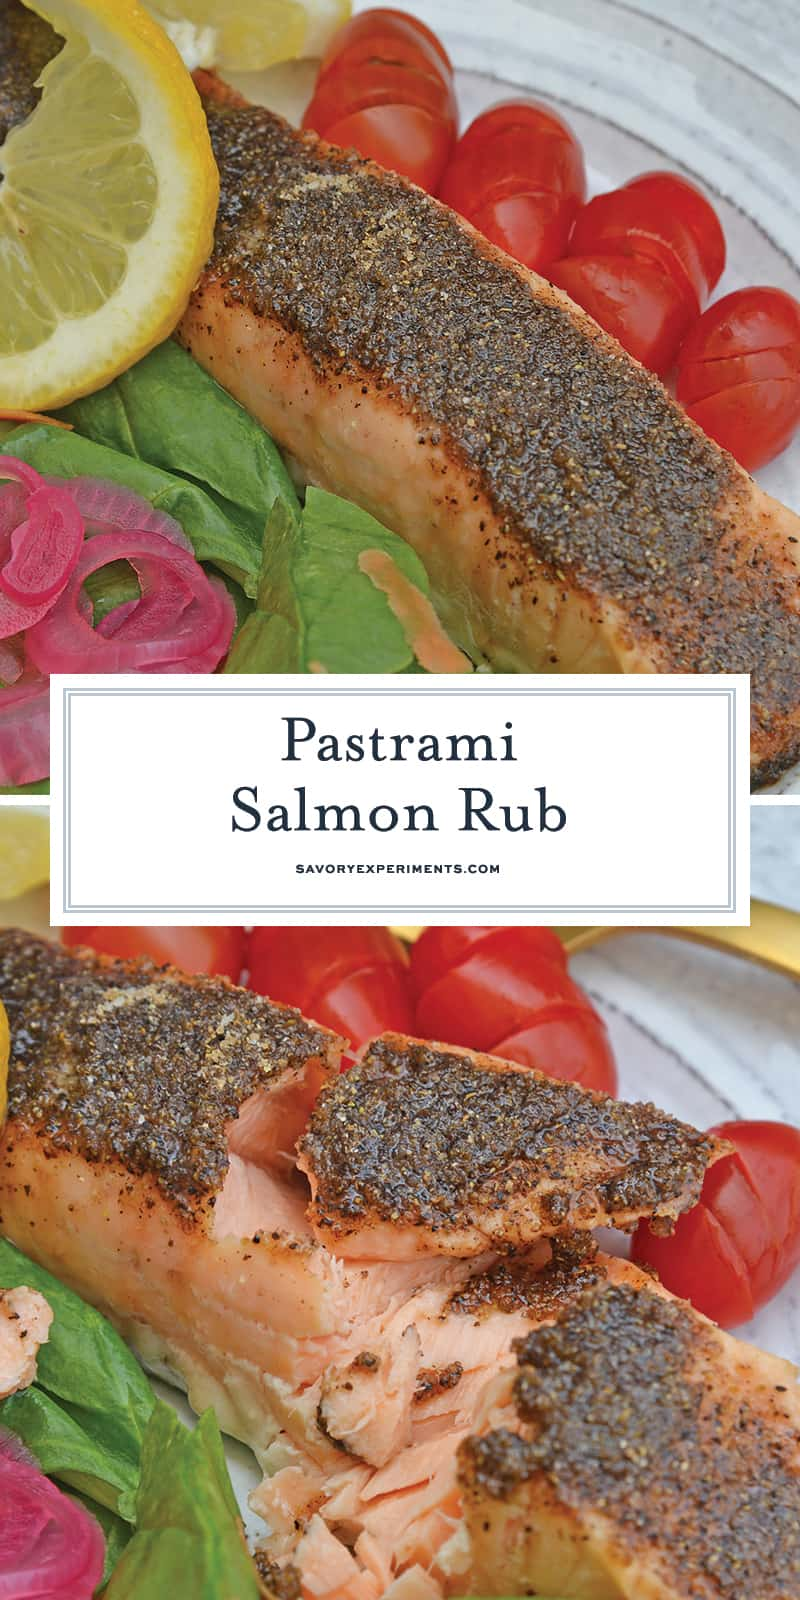 Pastrami Salmon Rub is a blend of the perfect salmon seasoning! Not only for baked salmon, this rub also work for grilled salmon and salmon kabobs! #salmonrub #bakedsalmon #pastramirub www.savoryexperiments.com